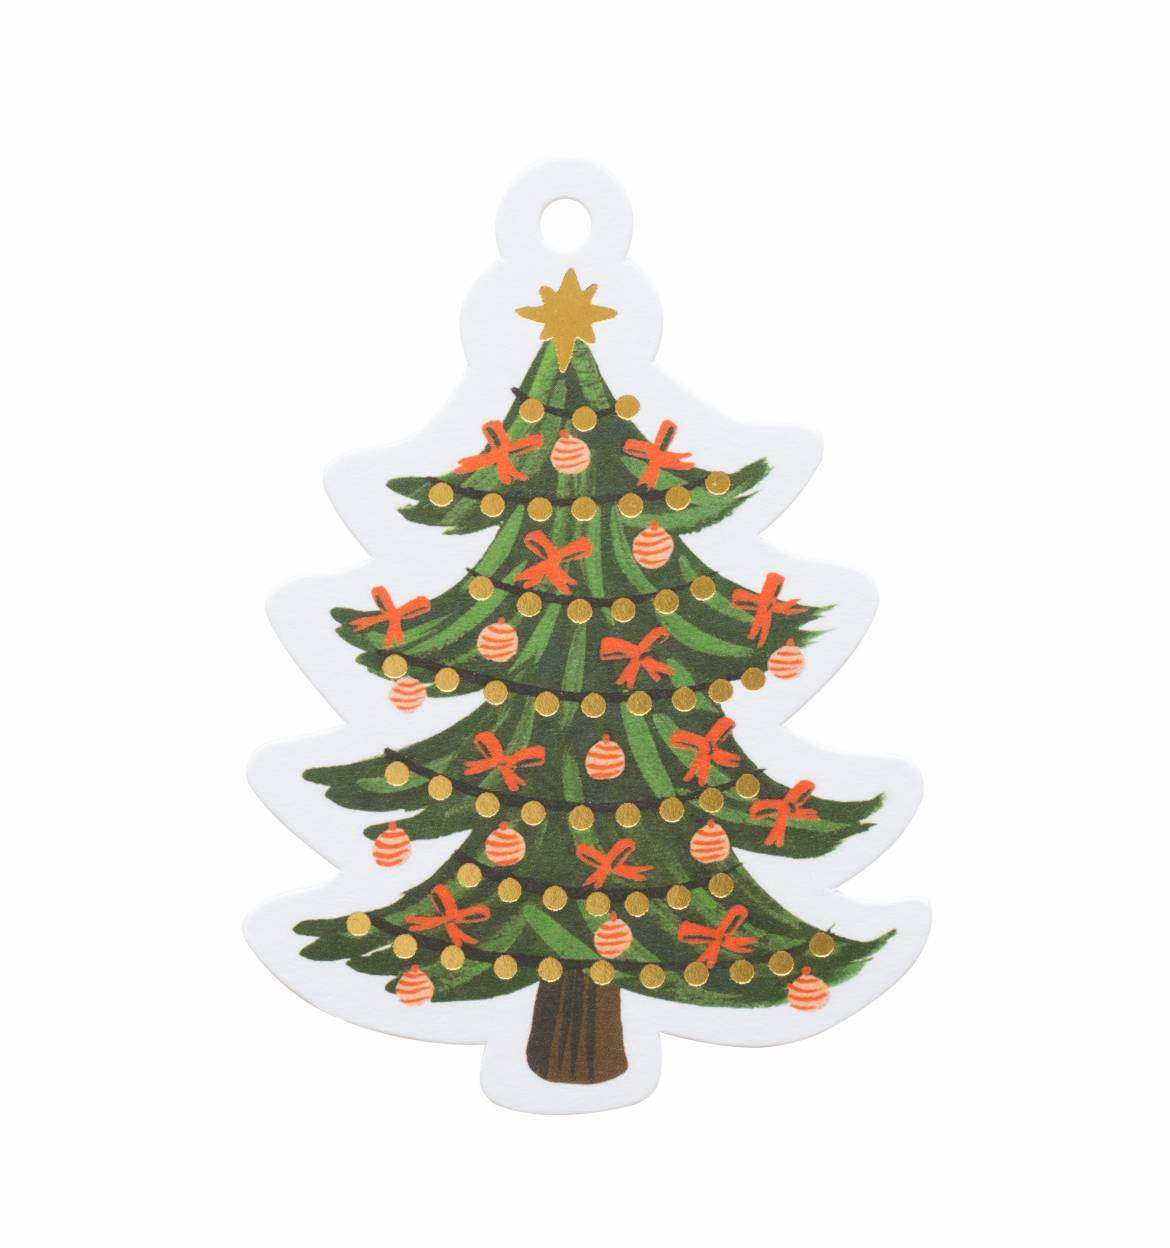 Christmas Tree Illustration.Felt Christmas Tree Marshwood Adult Community Education